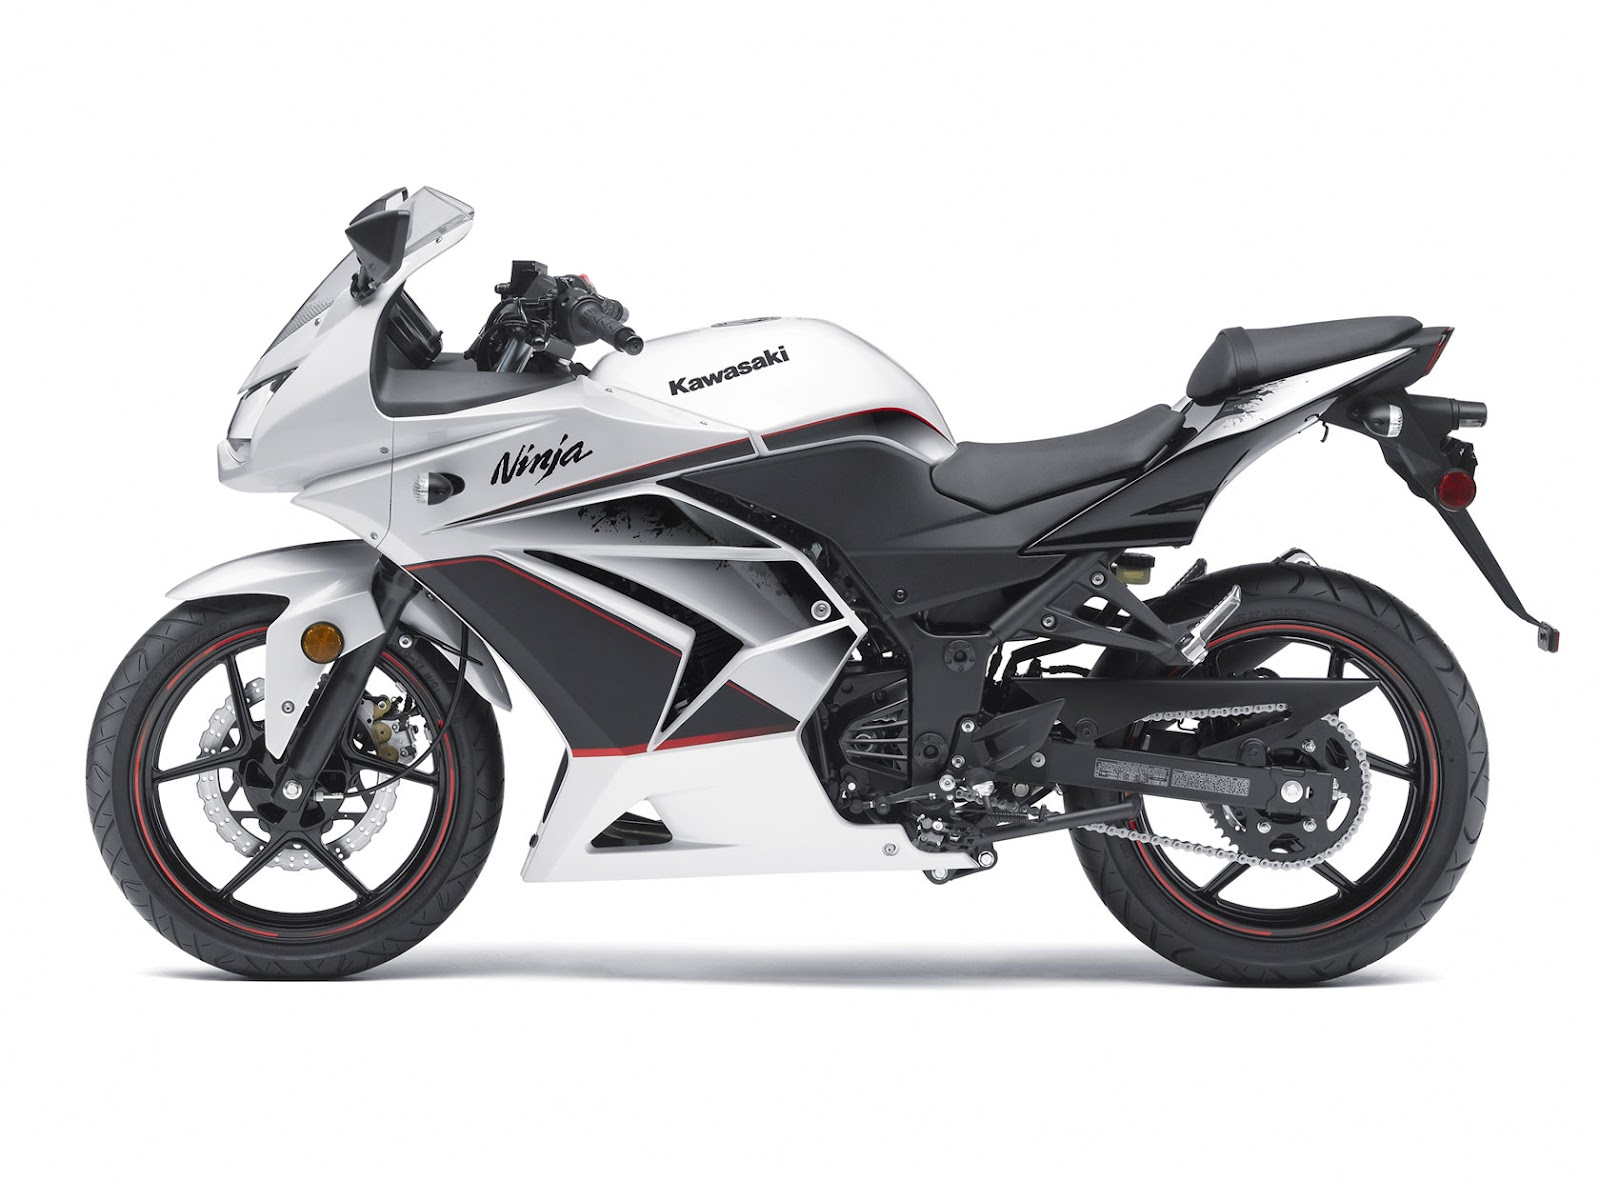 Main Features Of The Kawasaki Ninja 250 R Include